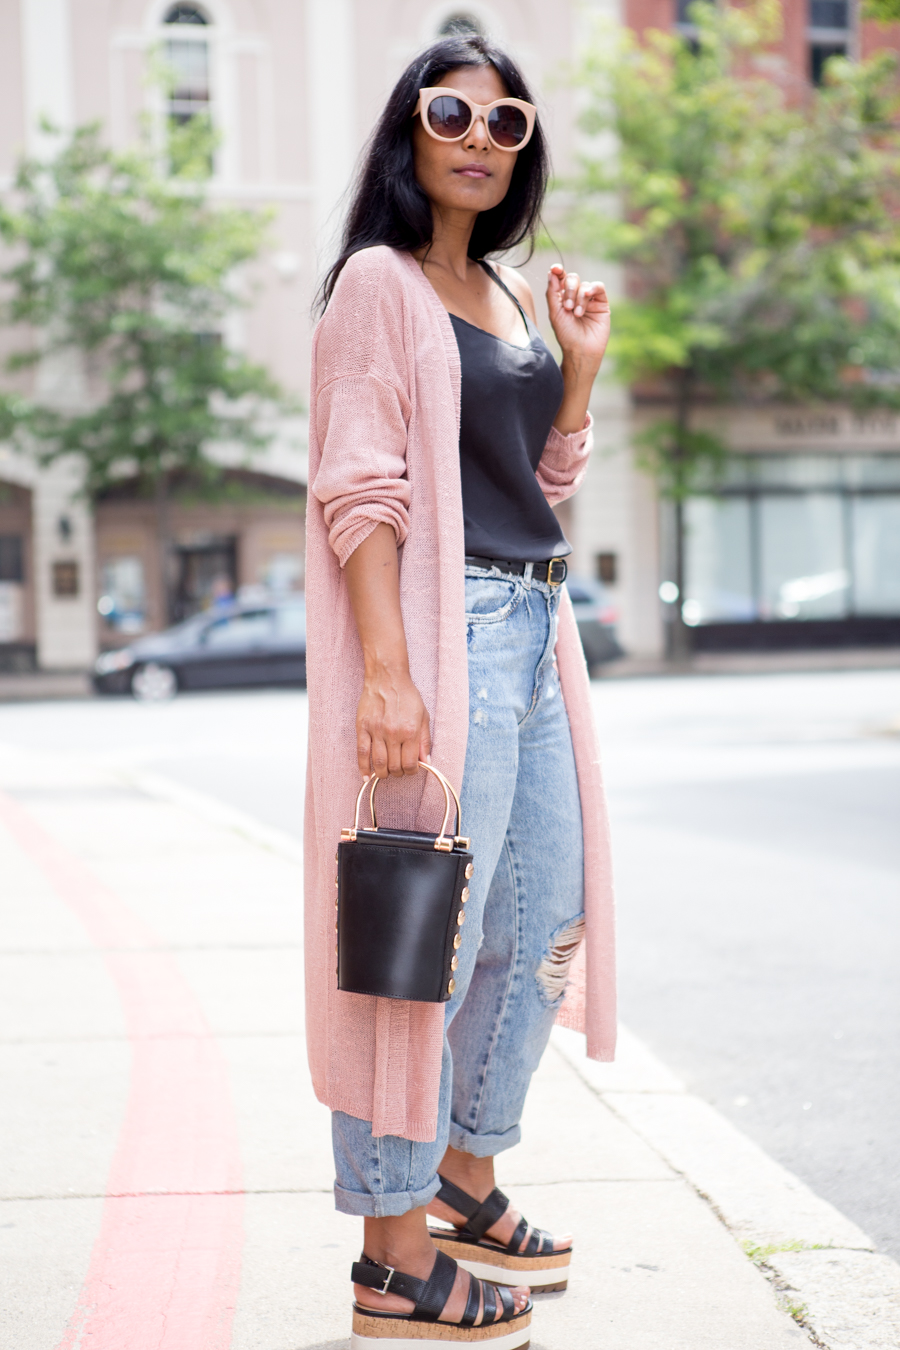 cardigan, longline, long cardigan, casual style, summer layers, summer style, summer lookbook, pastels, nordstrom sale, forever21, style tips, petite fashion, curvy fashion, grunge, 90s style, summer accessories, affordable style